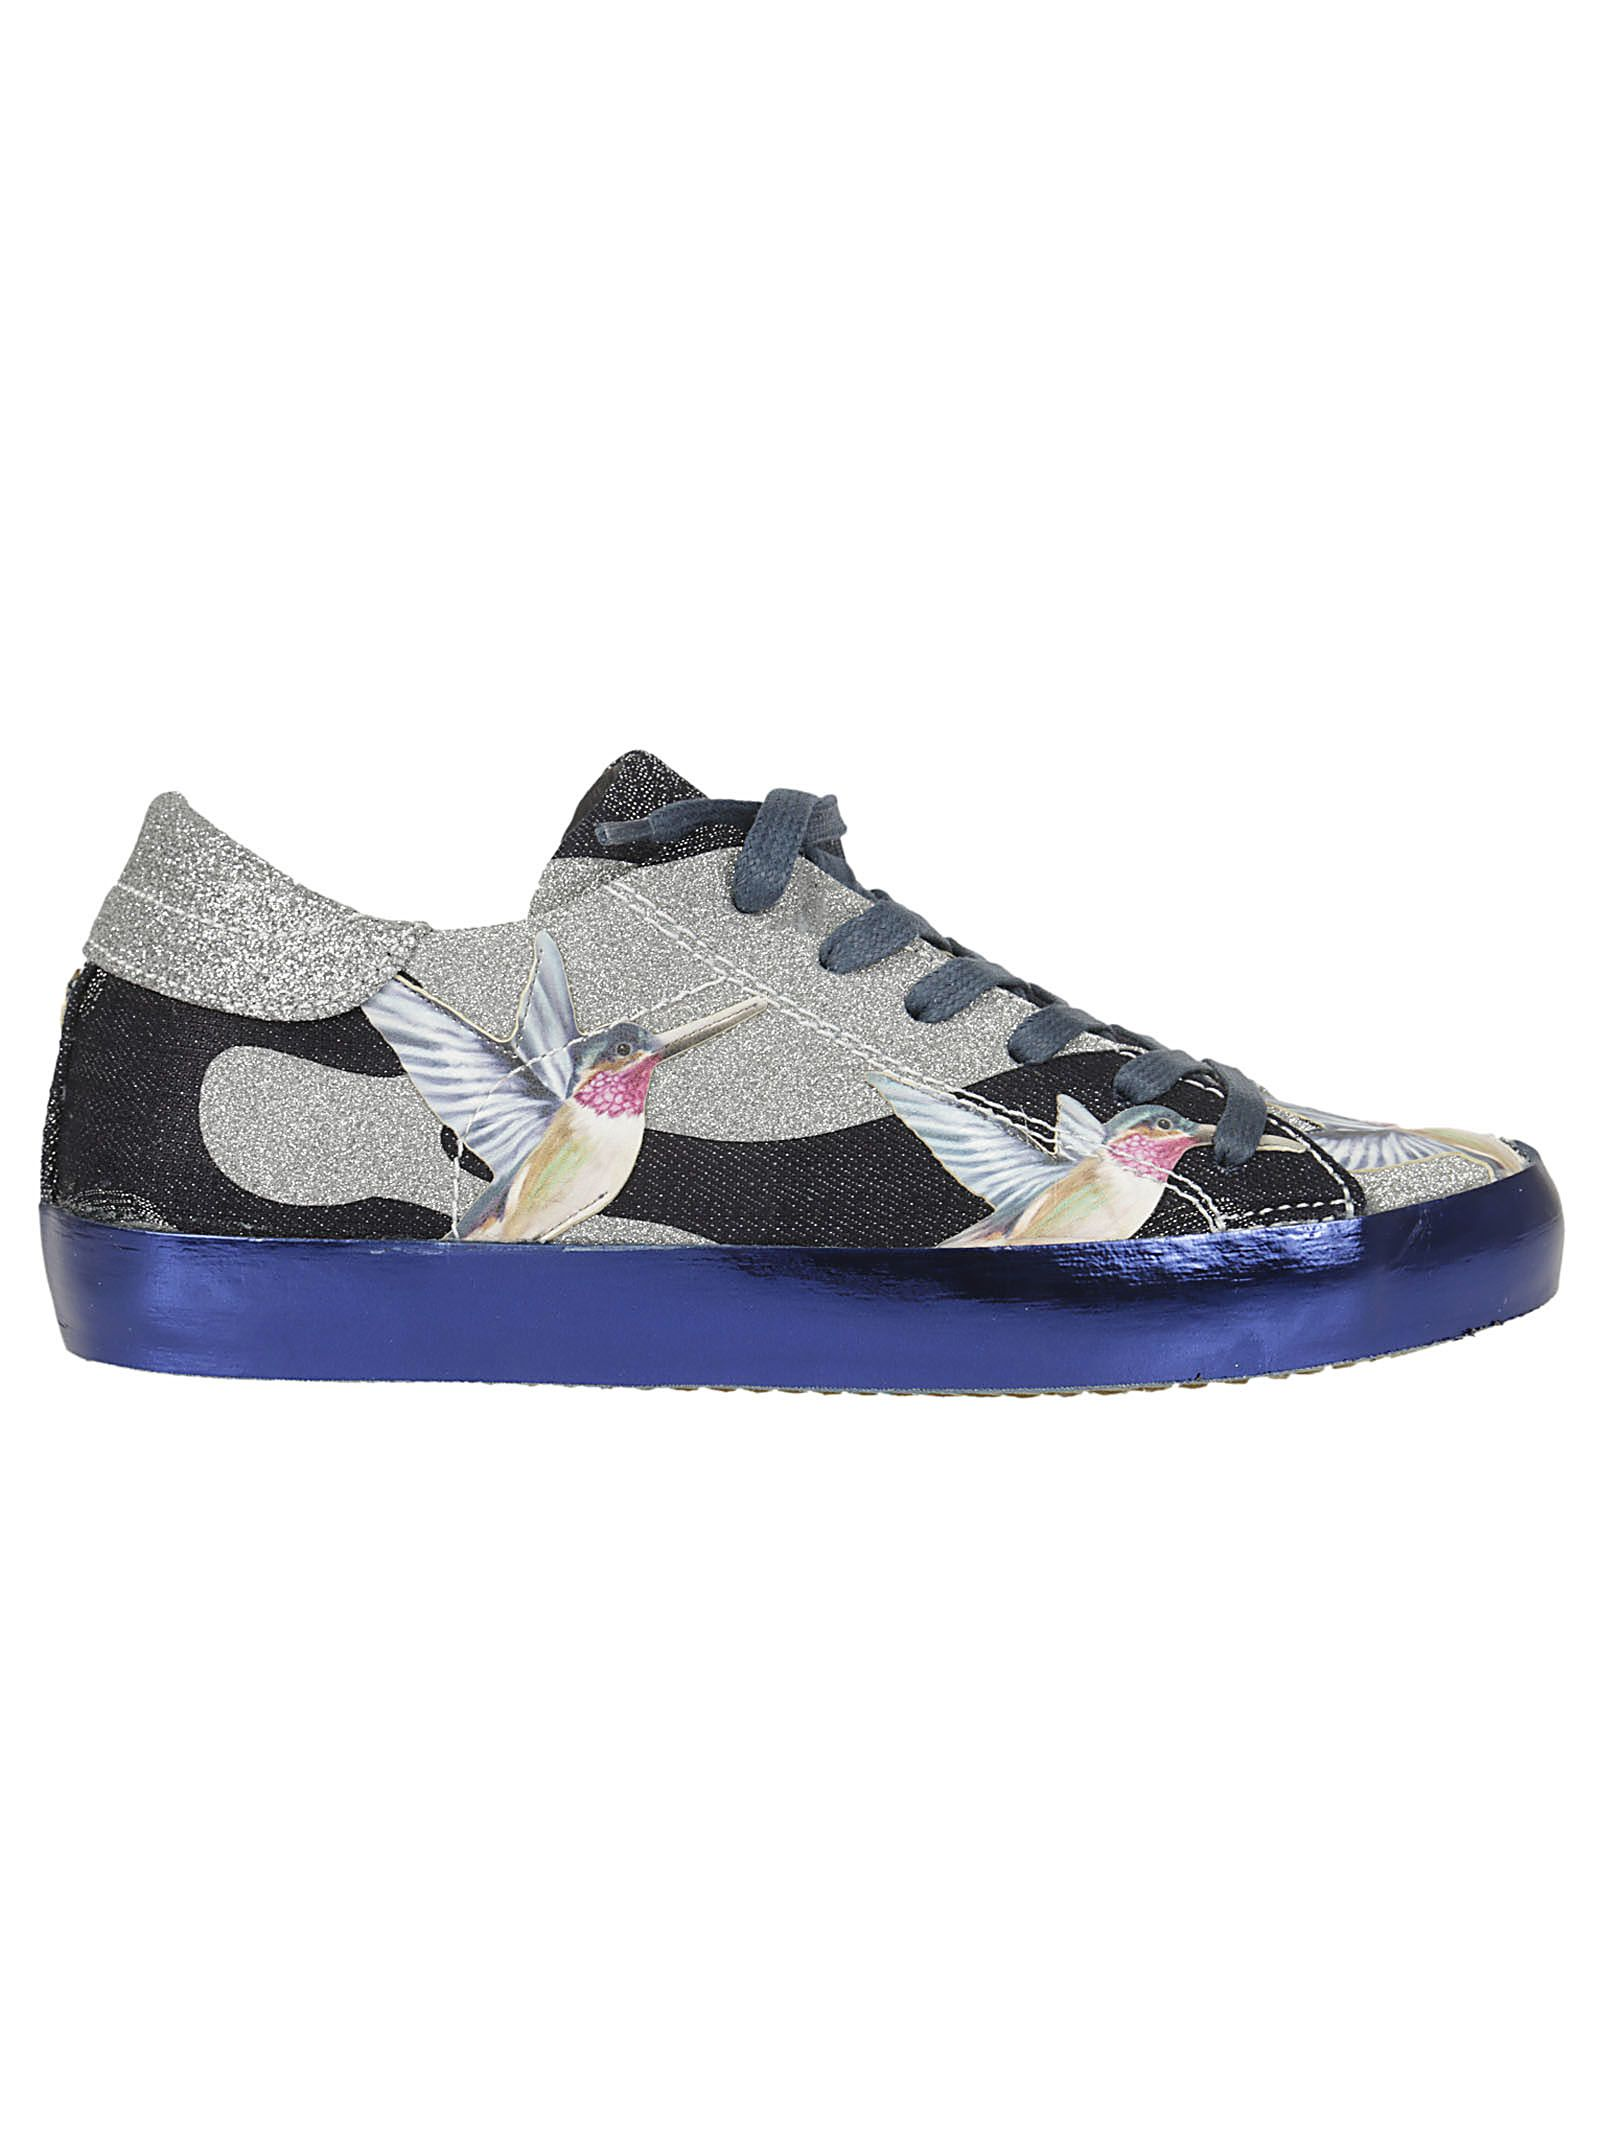 Philippe Model Hummingbird Print Sneakers